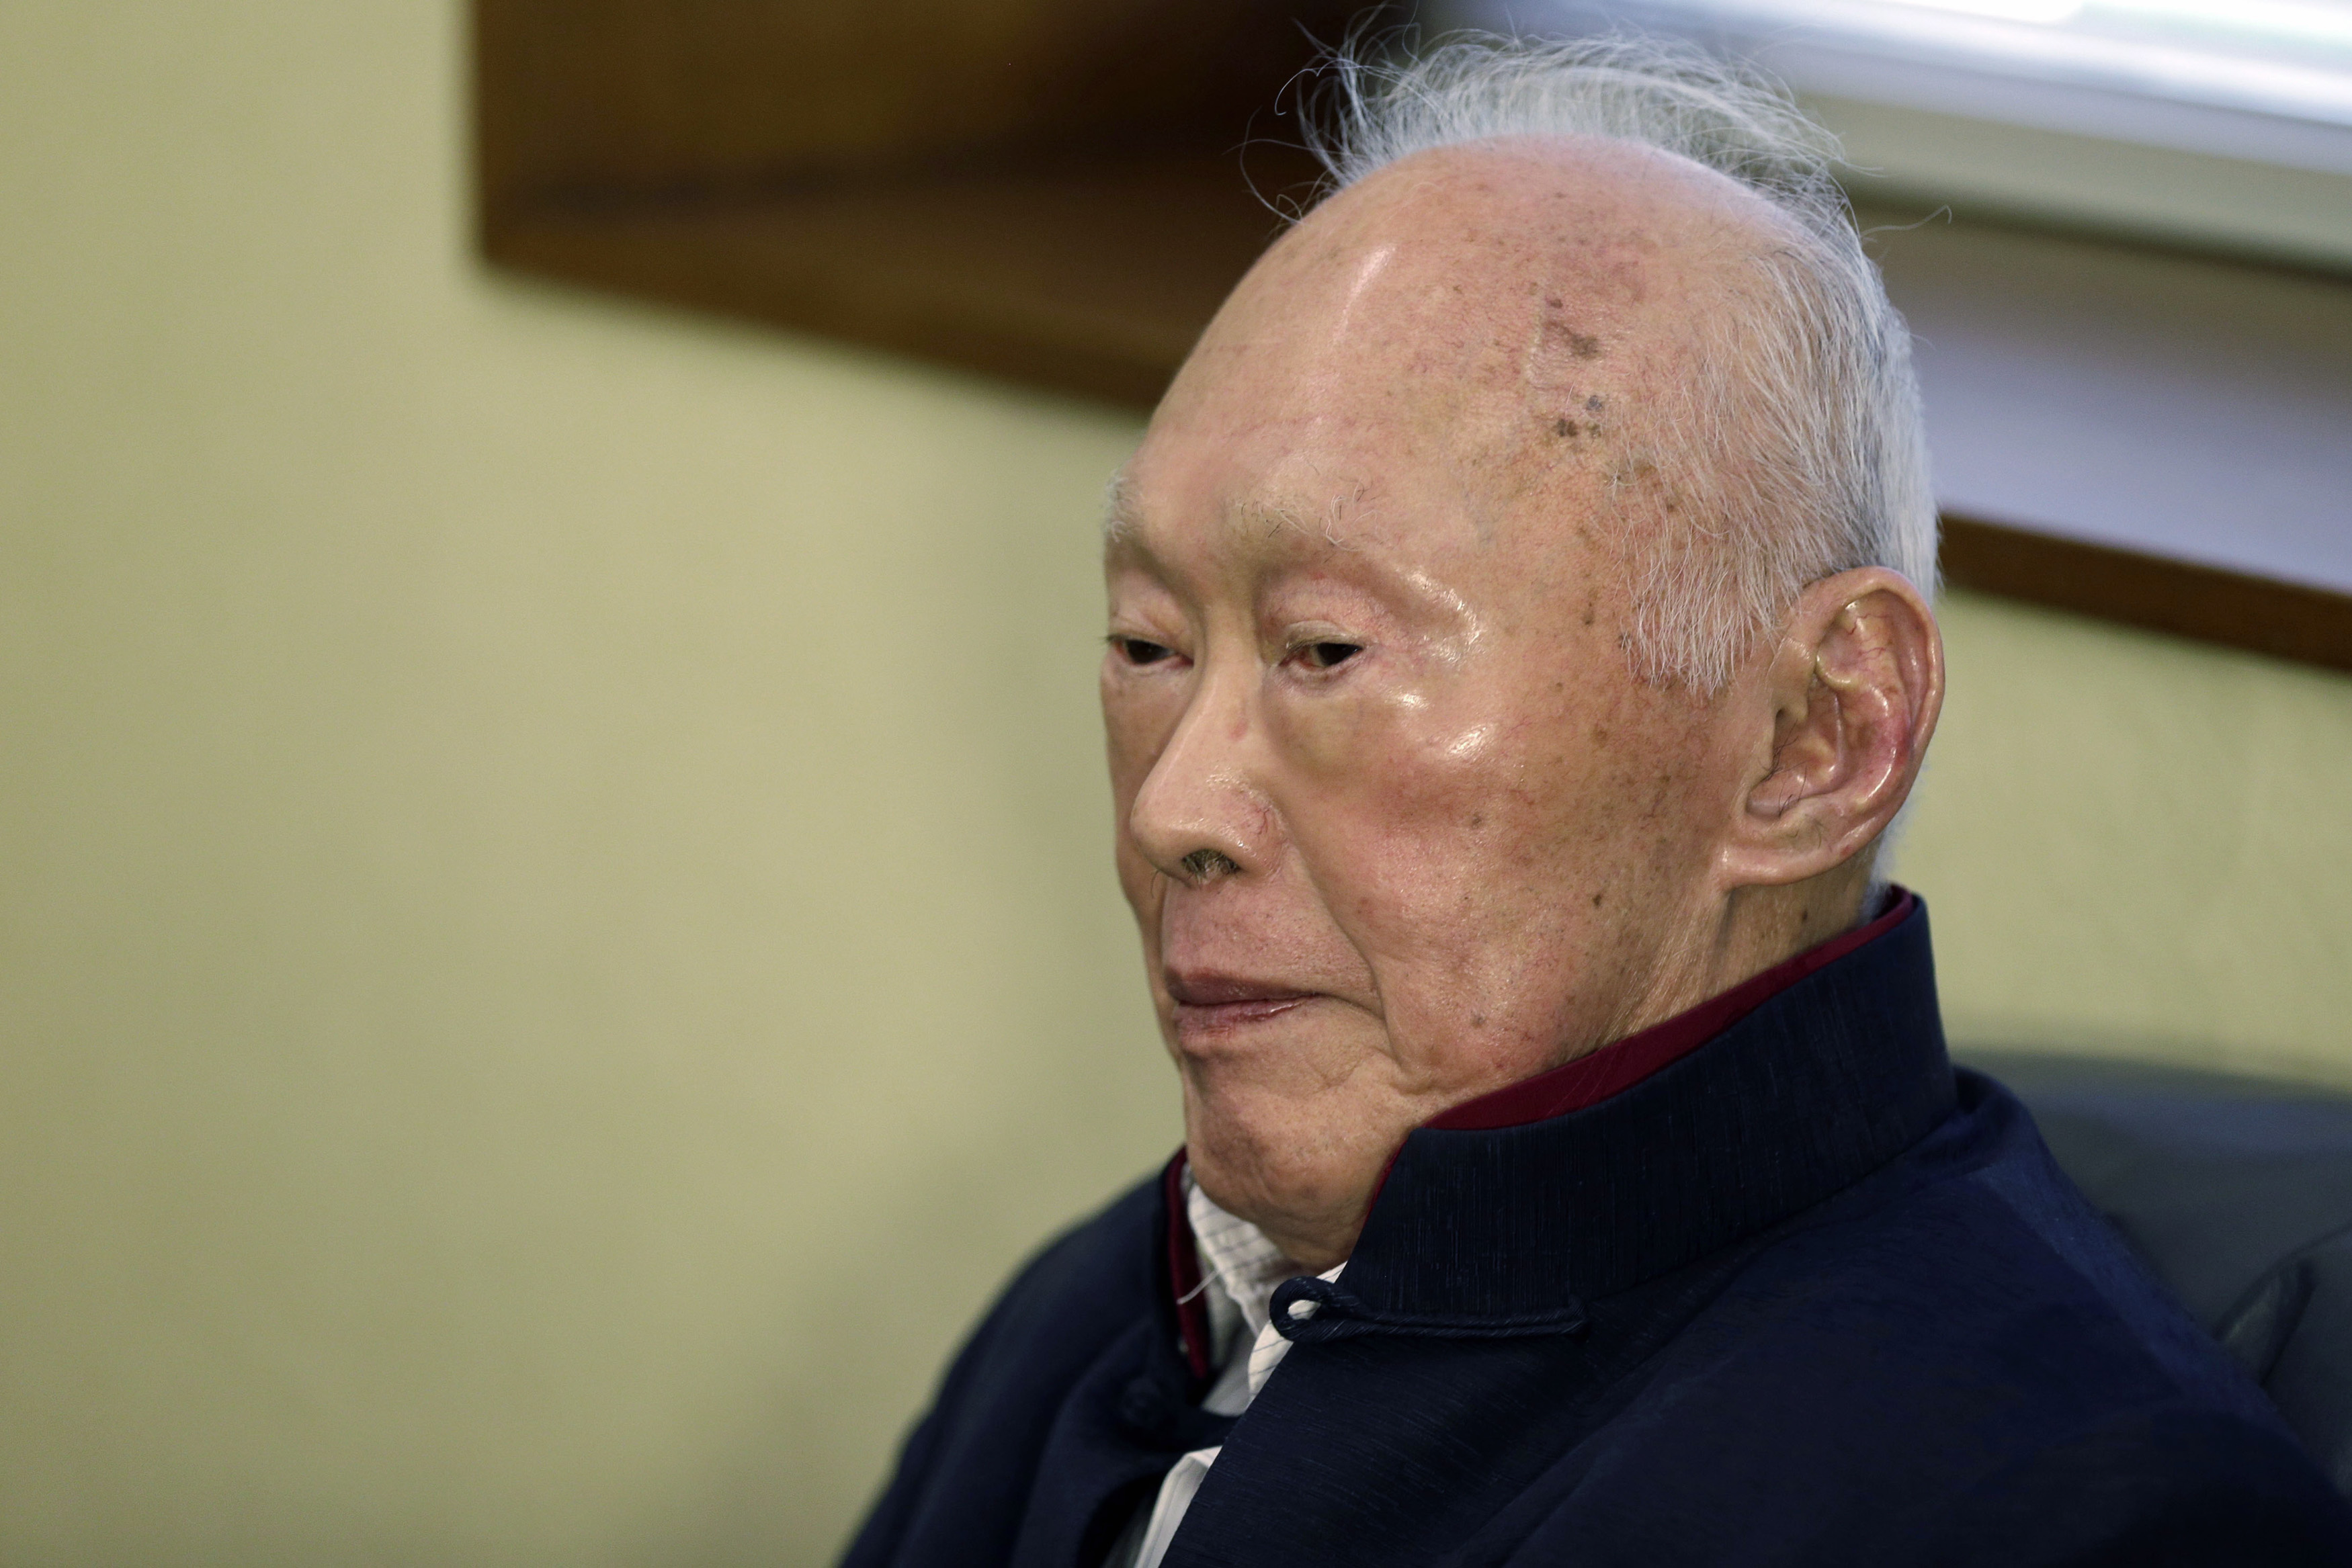 Former Singaporean Prime Minister Lee Kuan Yew died on Monday, March 23, at the age of 91. He is credited for turning Singapore into an economic and educational success story.